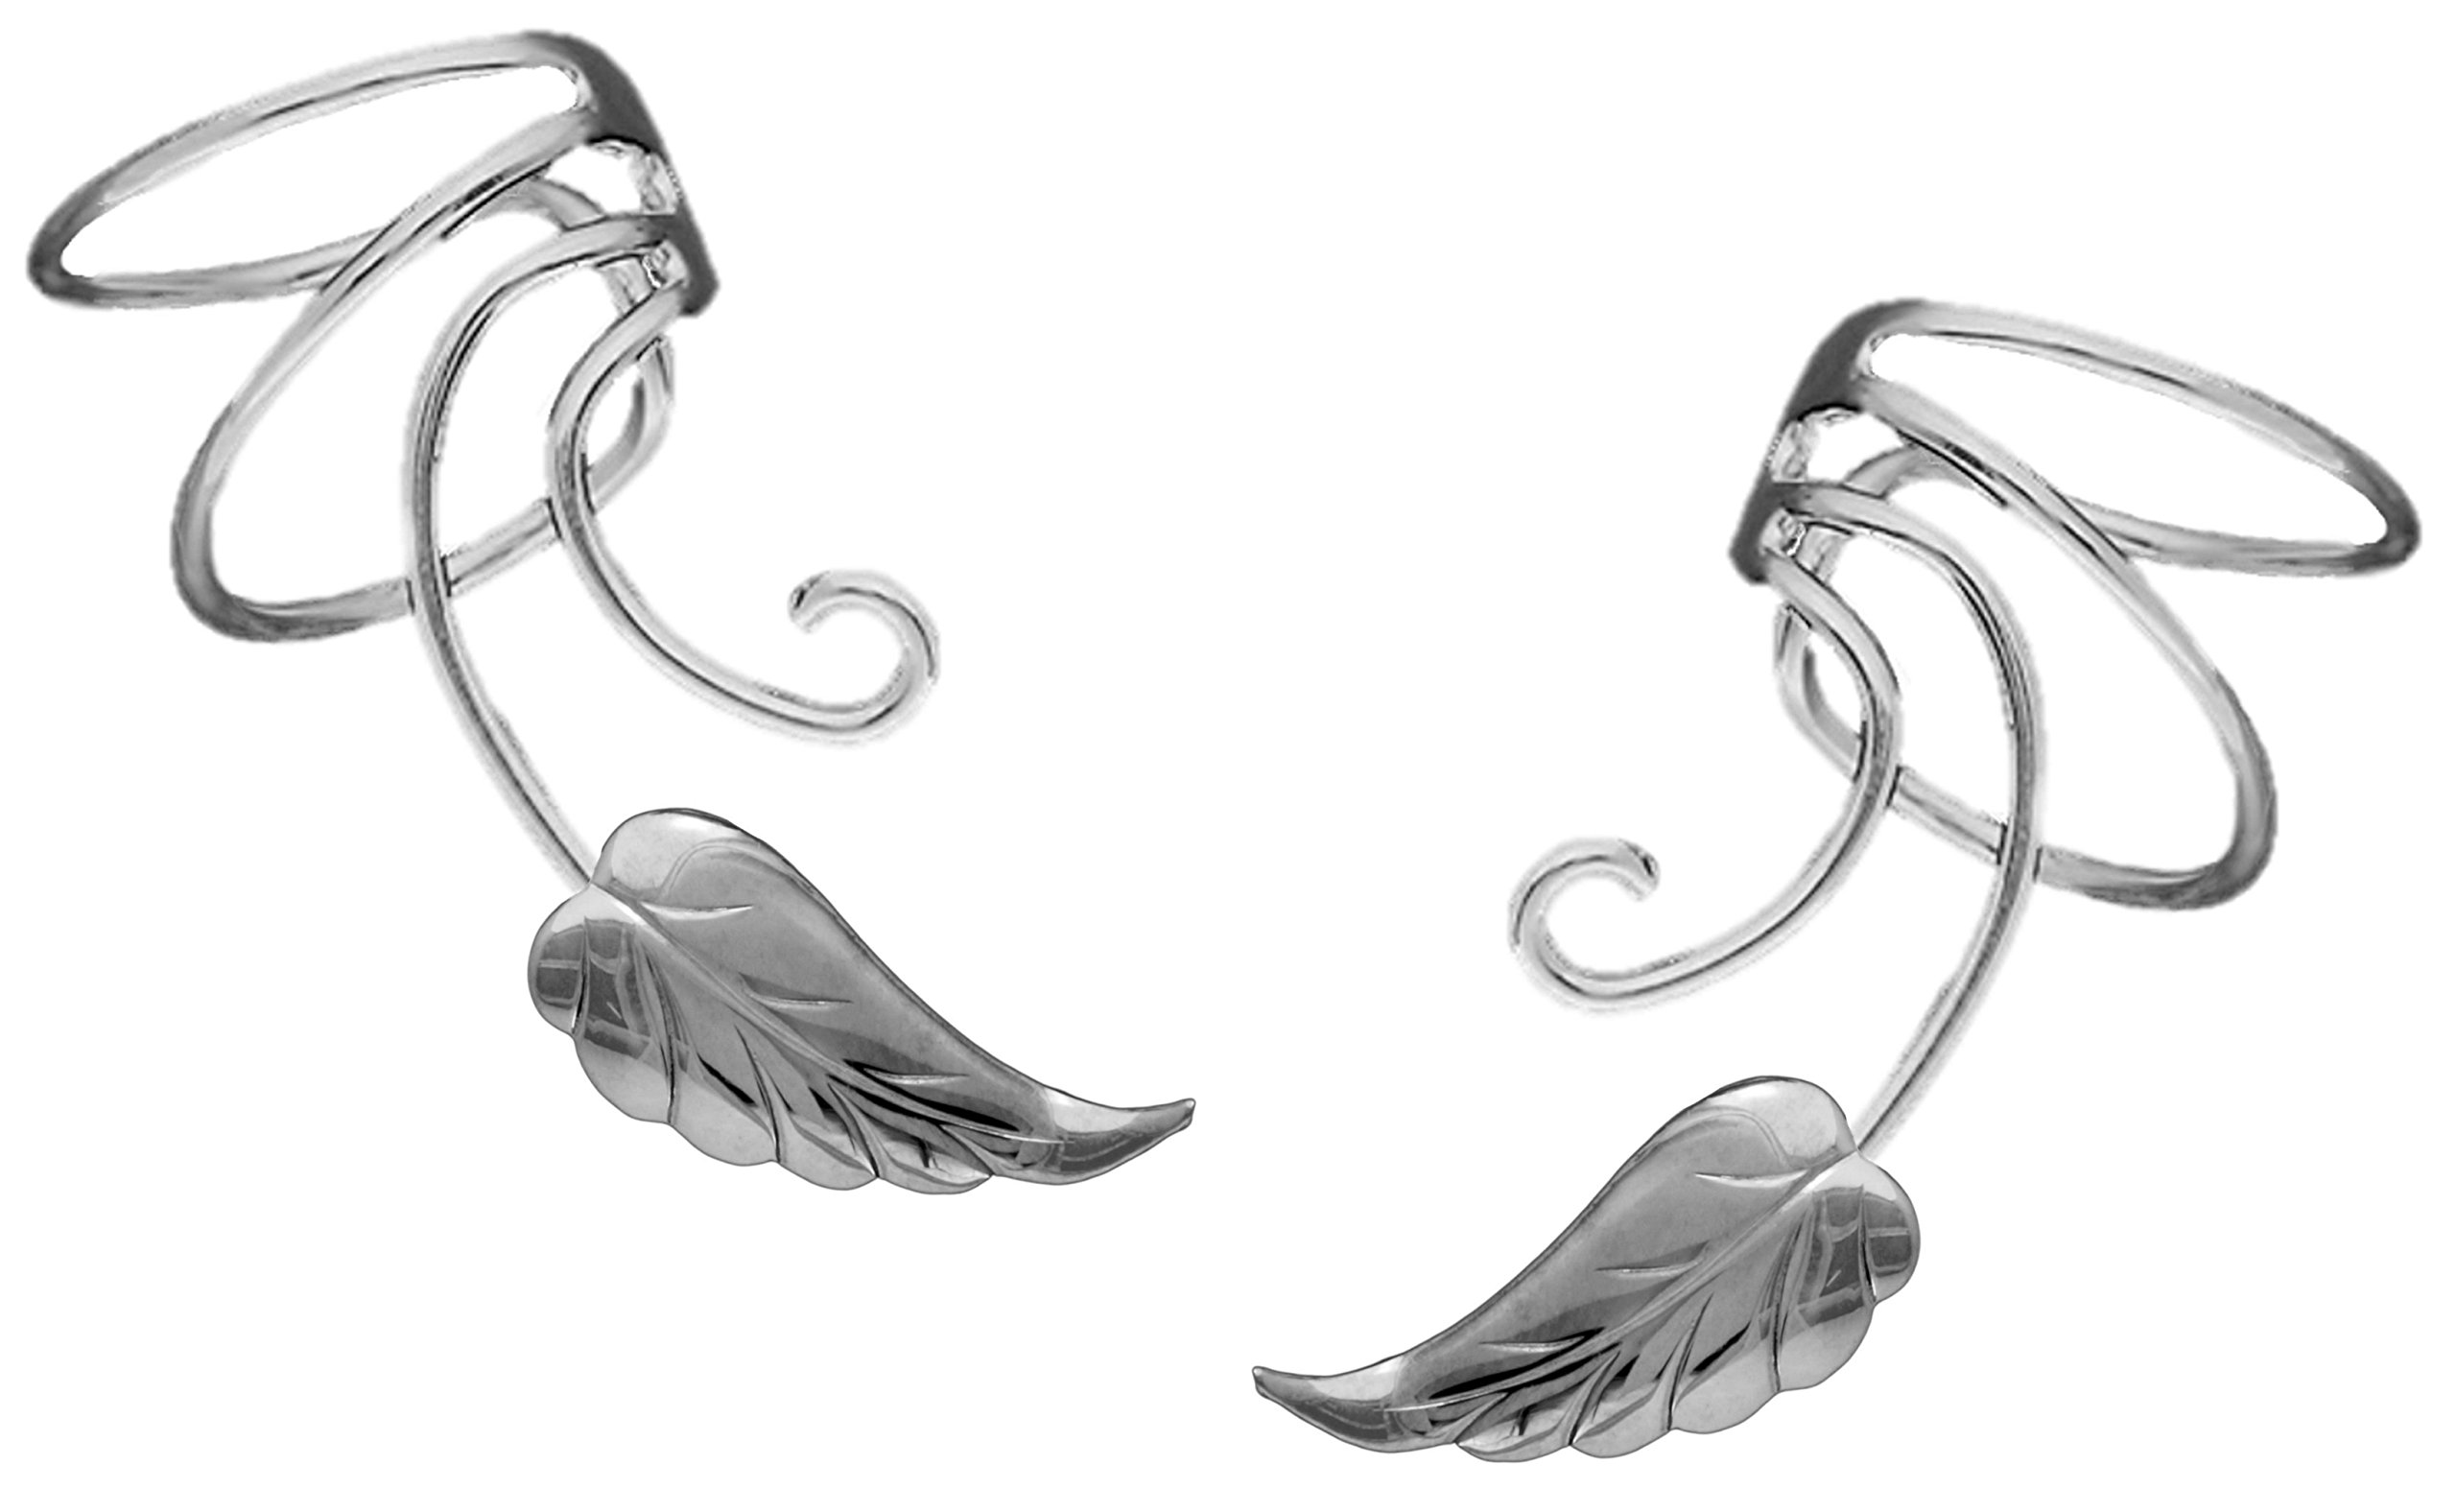 Southwest Leaf Curly Wave Ear Cuff Non-pierced Cartilage Wrap Earrings, a Pair in Sterling Silver